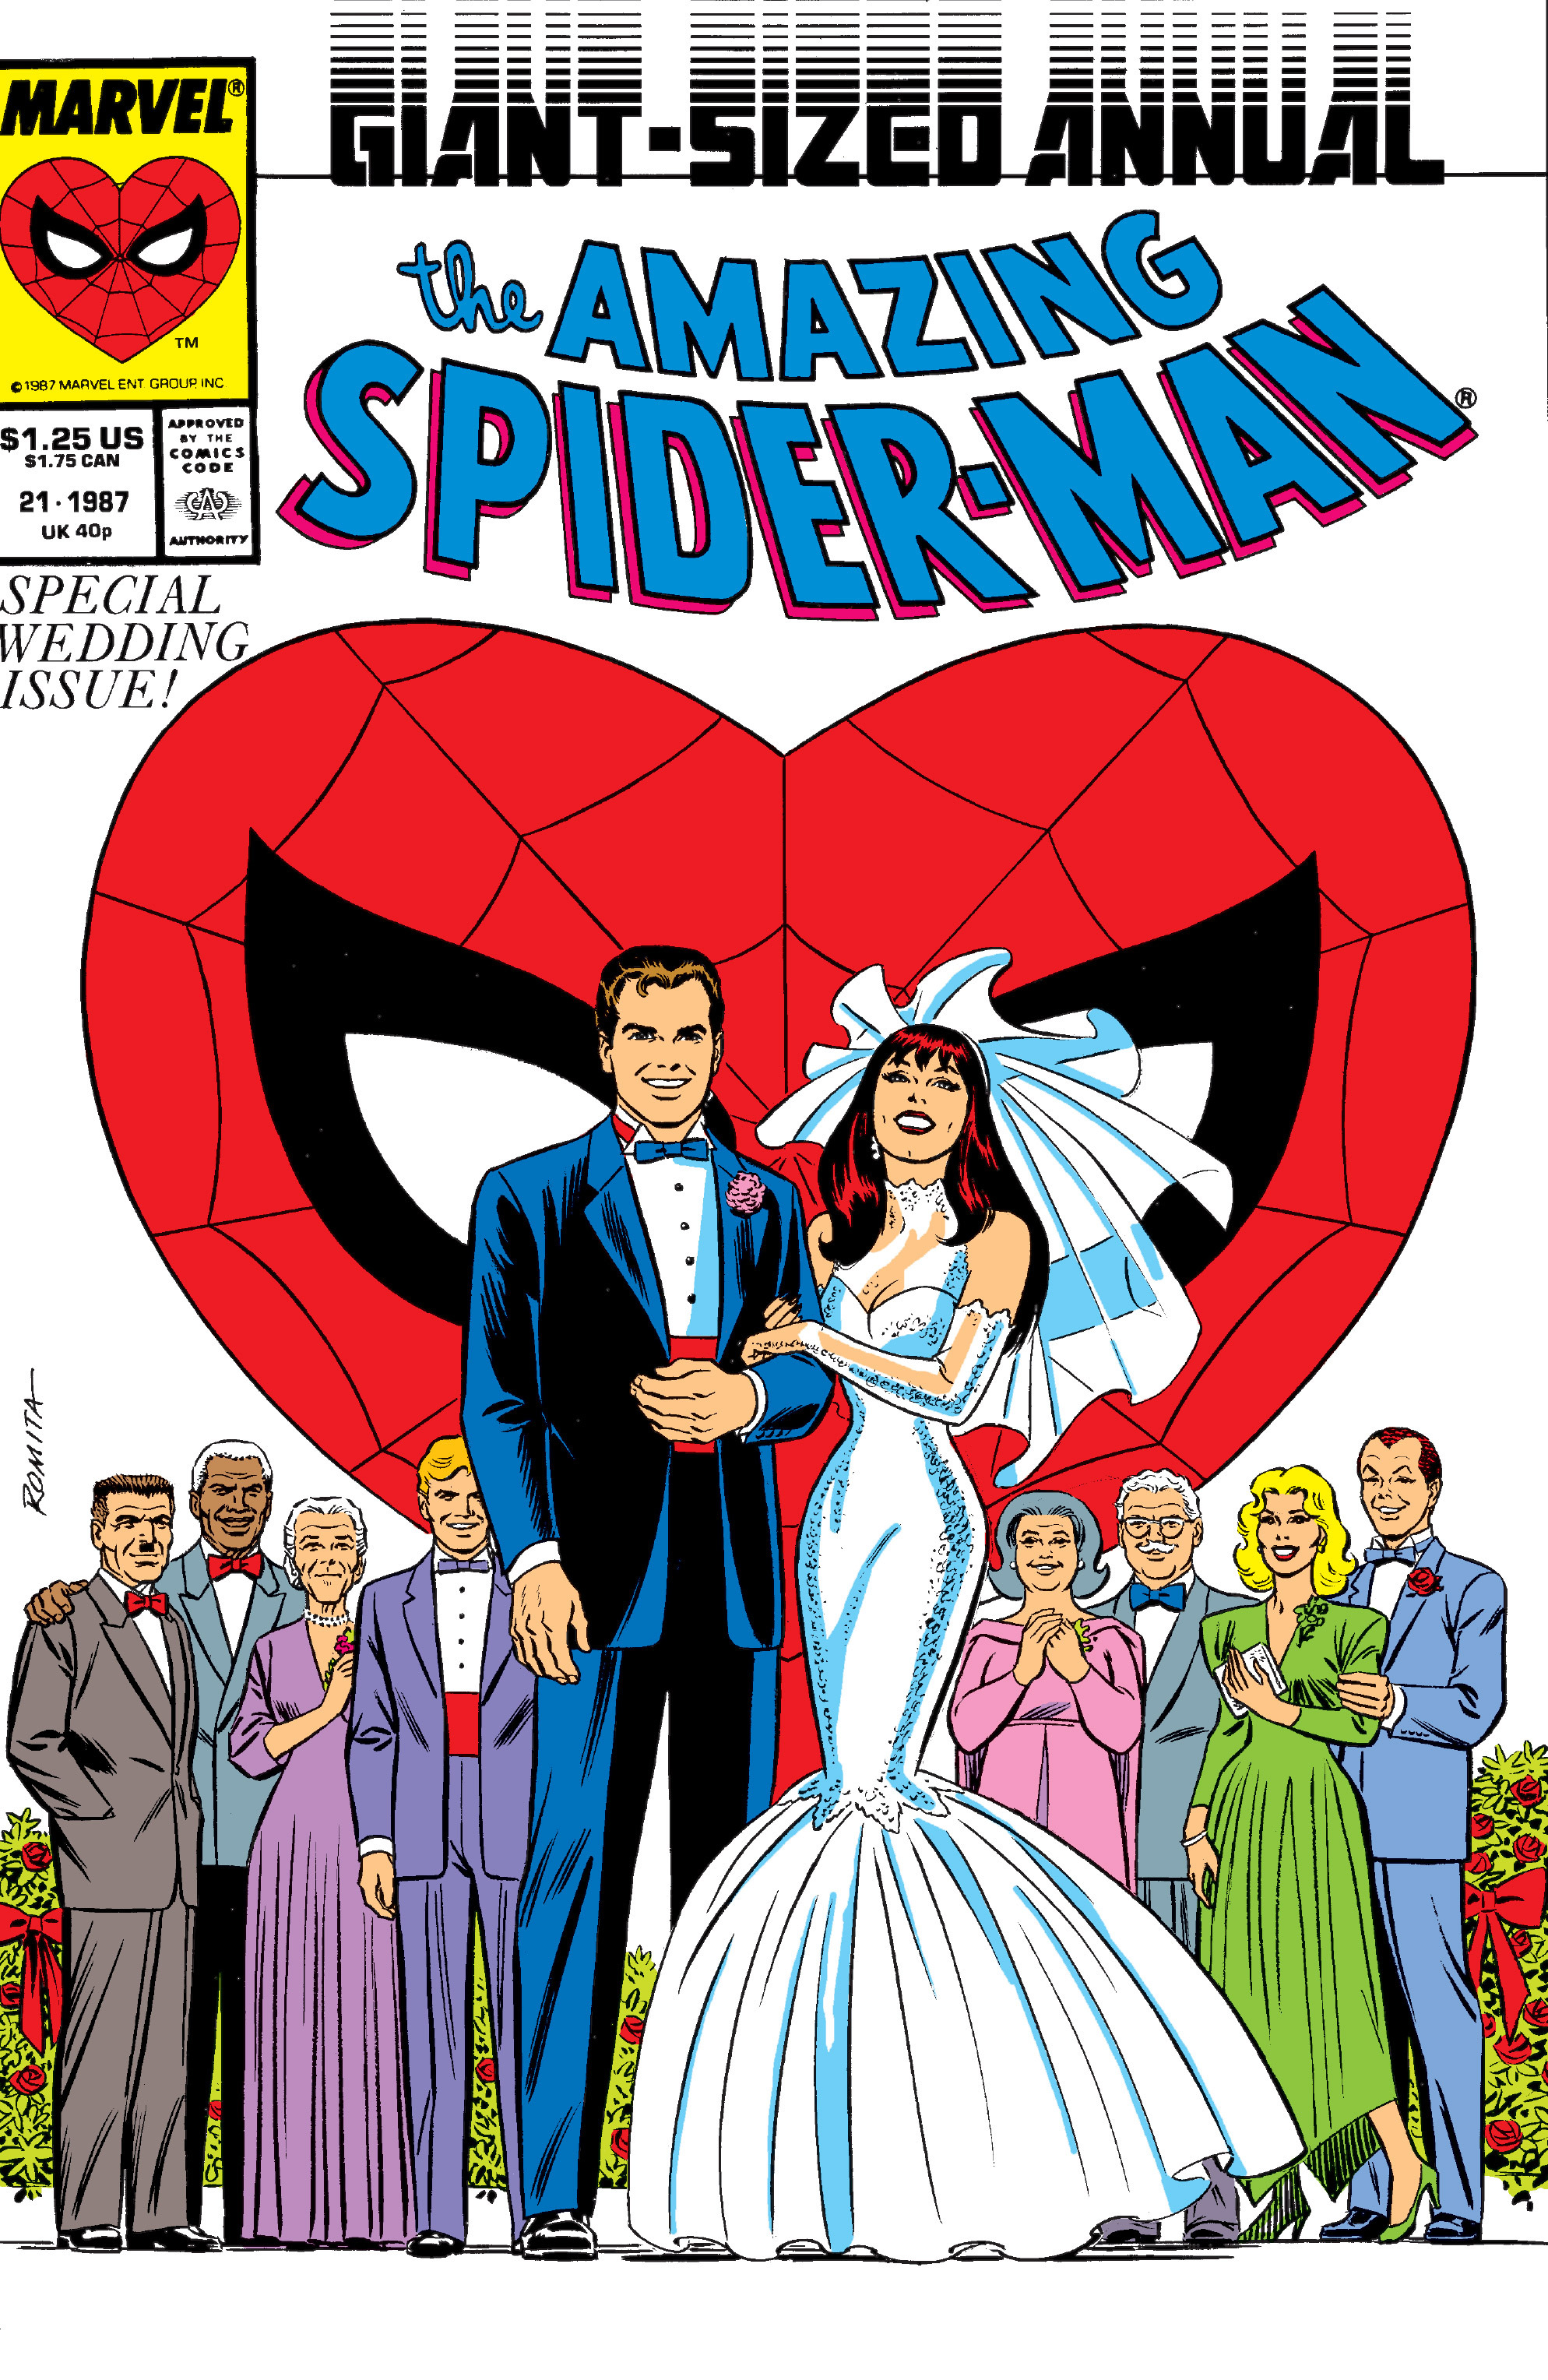 Man Proposes With Amazing Spider-Man Annual #21 on Comic Book Men